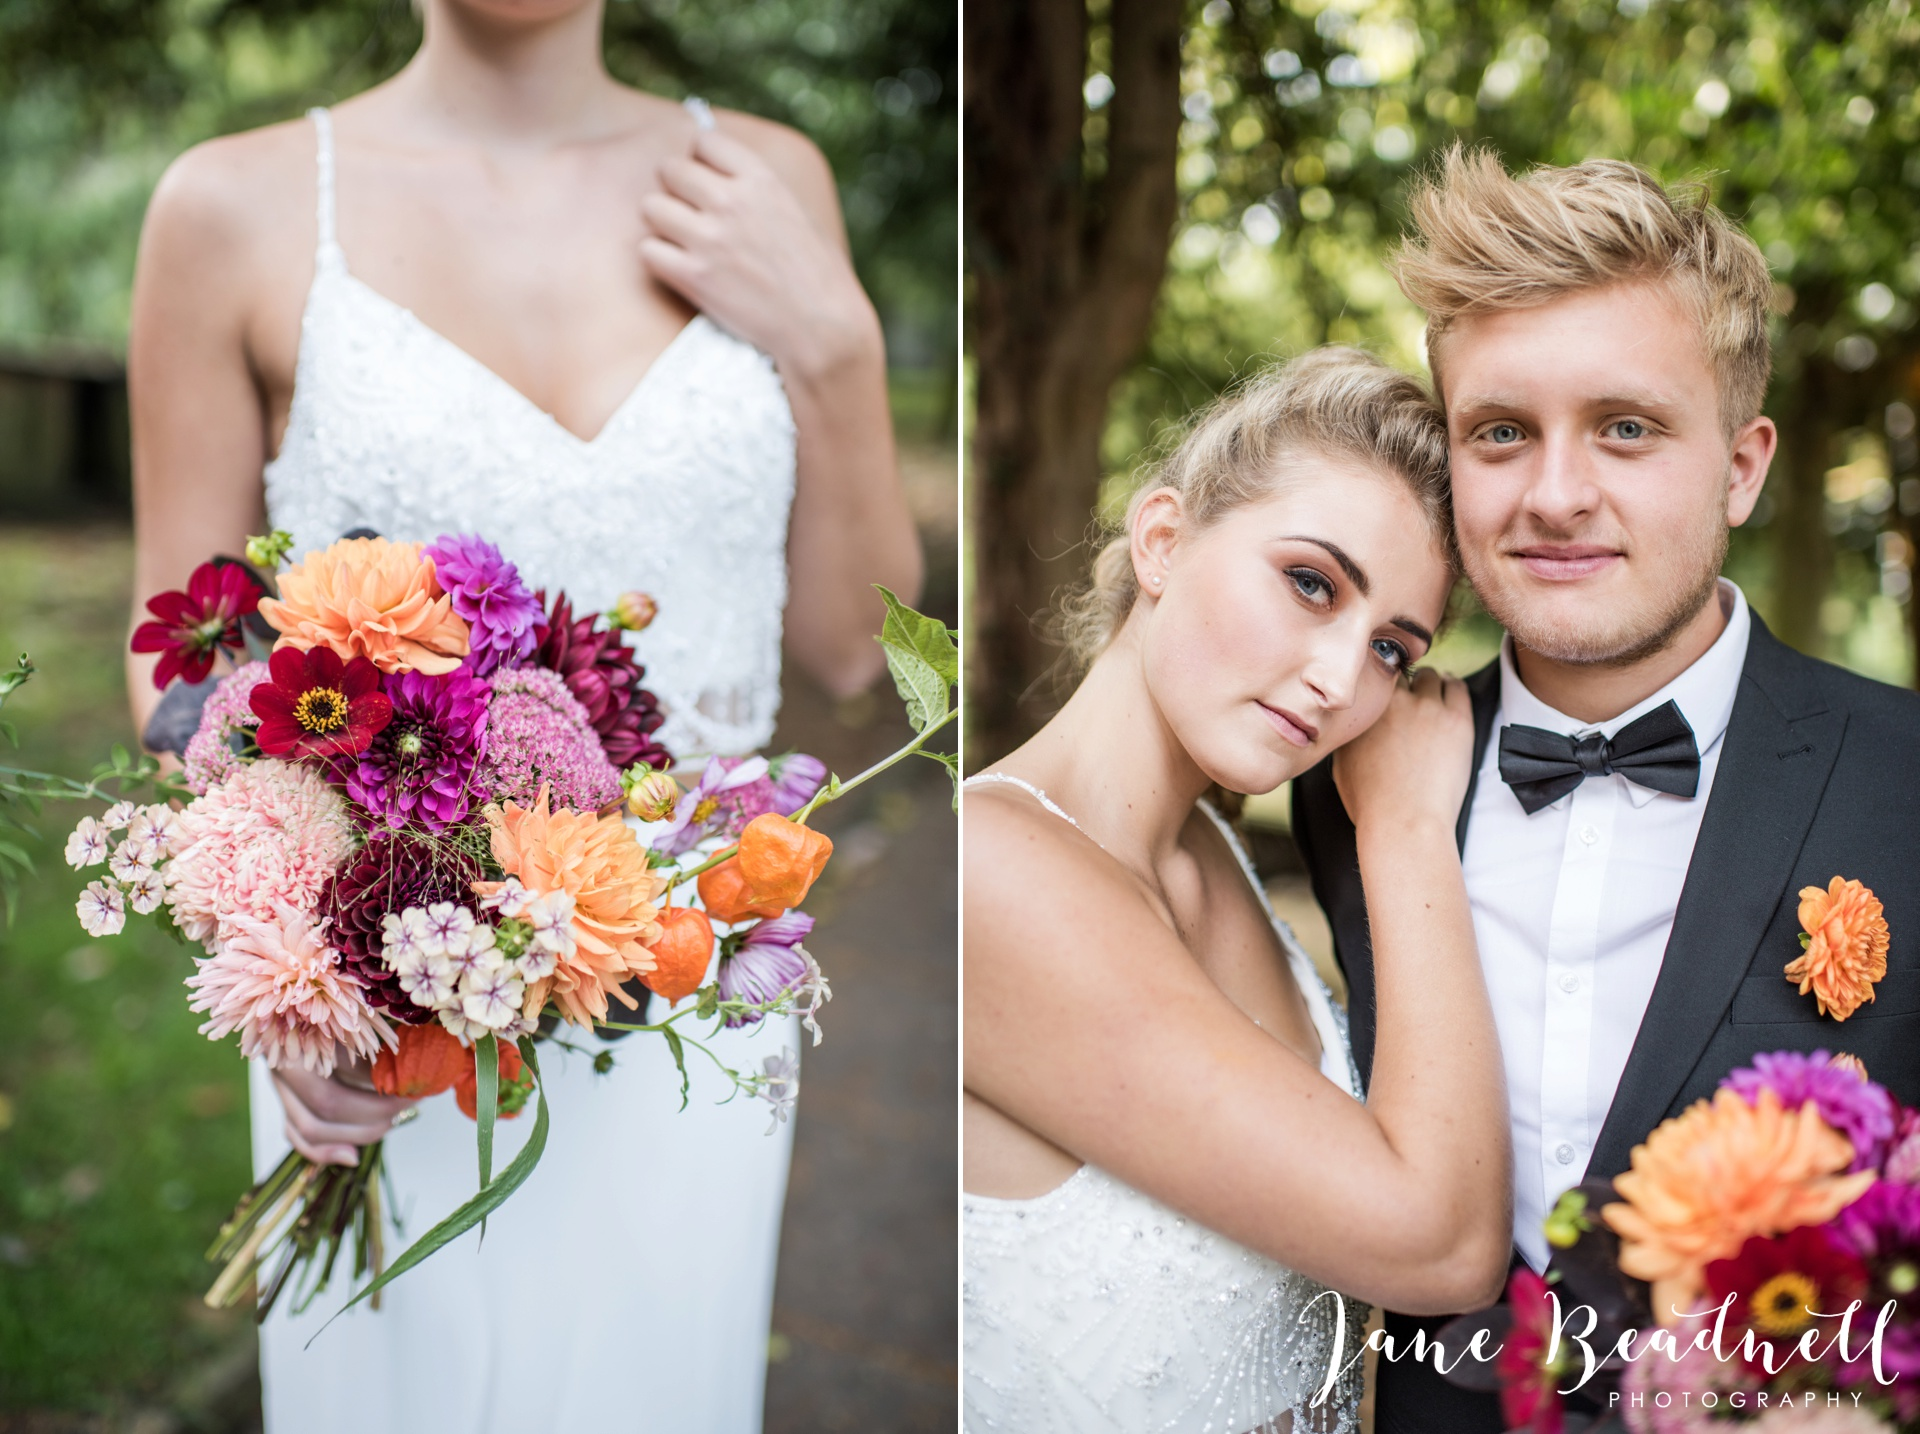 yorkshire-fine-art-wedding-photographer-jane-beadnell-photography-with-leafy-couture-wedding-flowers_0025